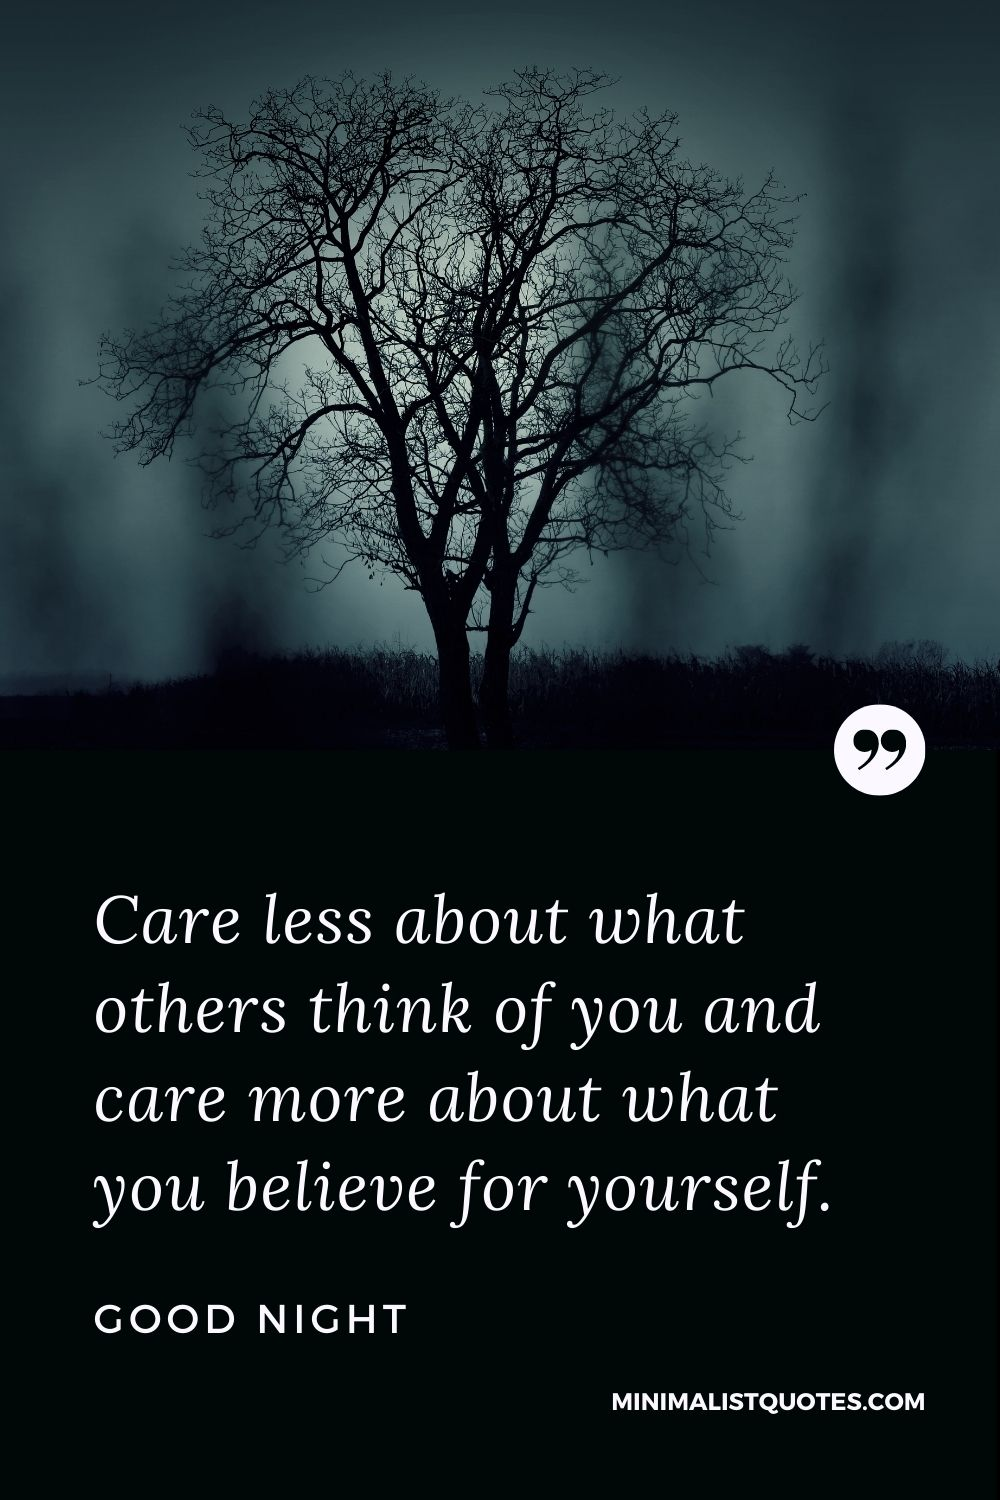 Good Night Wishes - Care less about what others think of you and care more about what you believe for yourself.